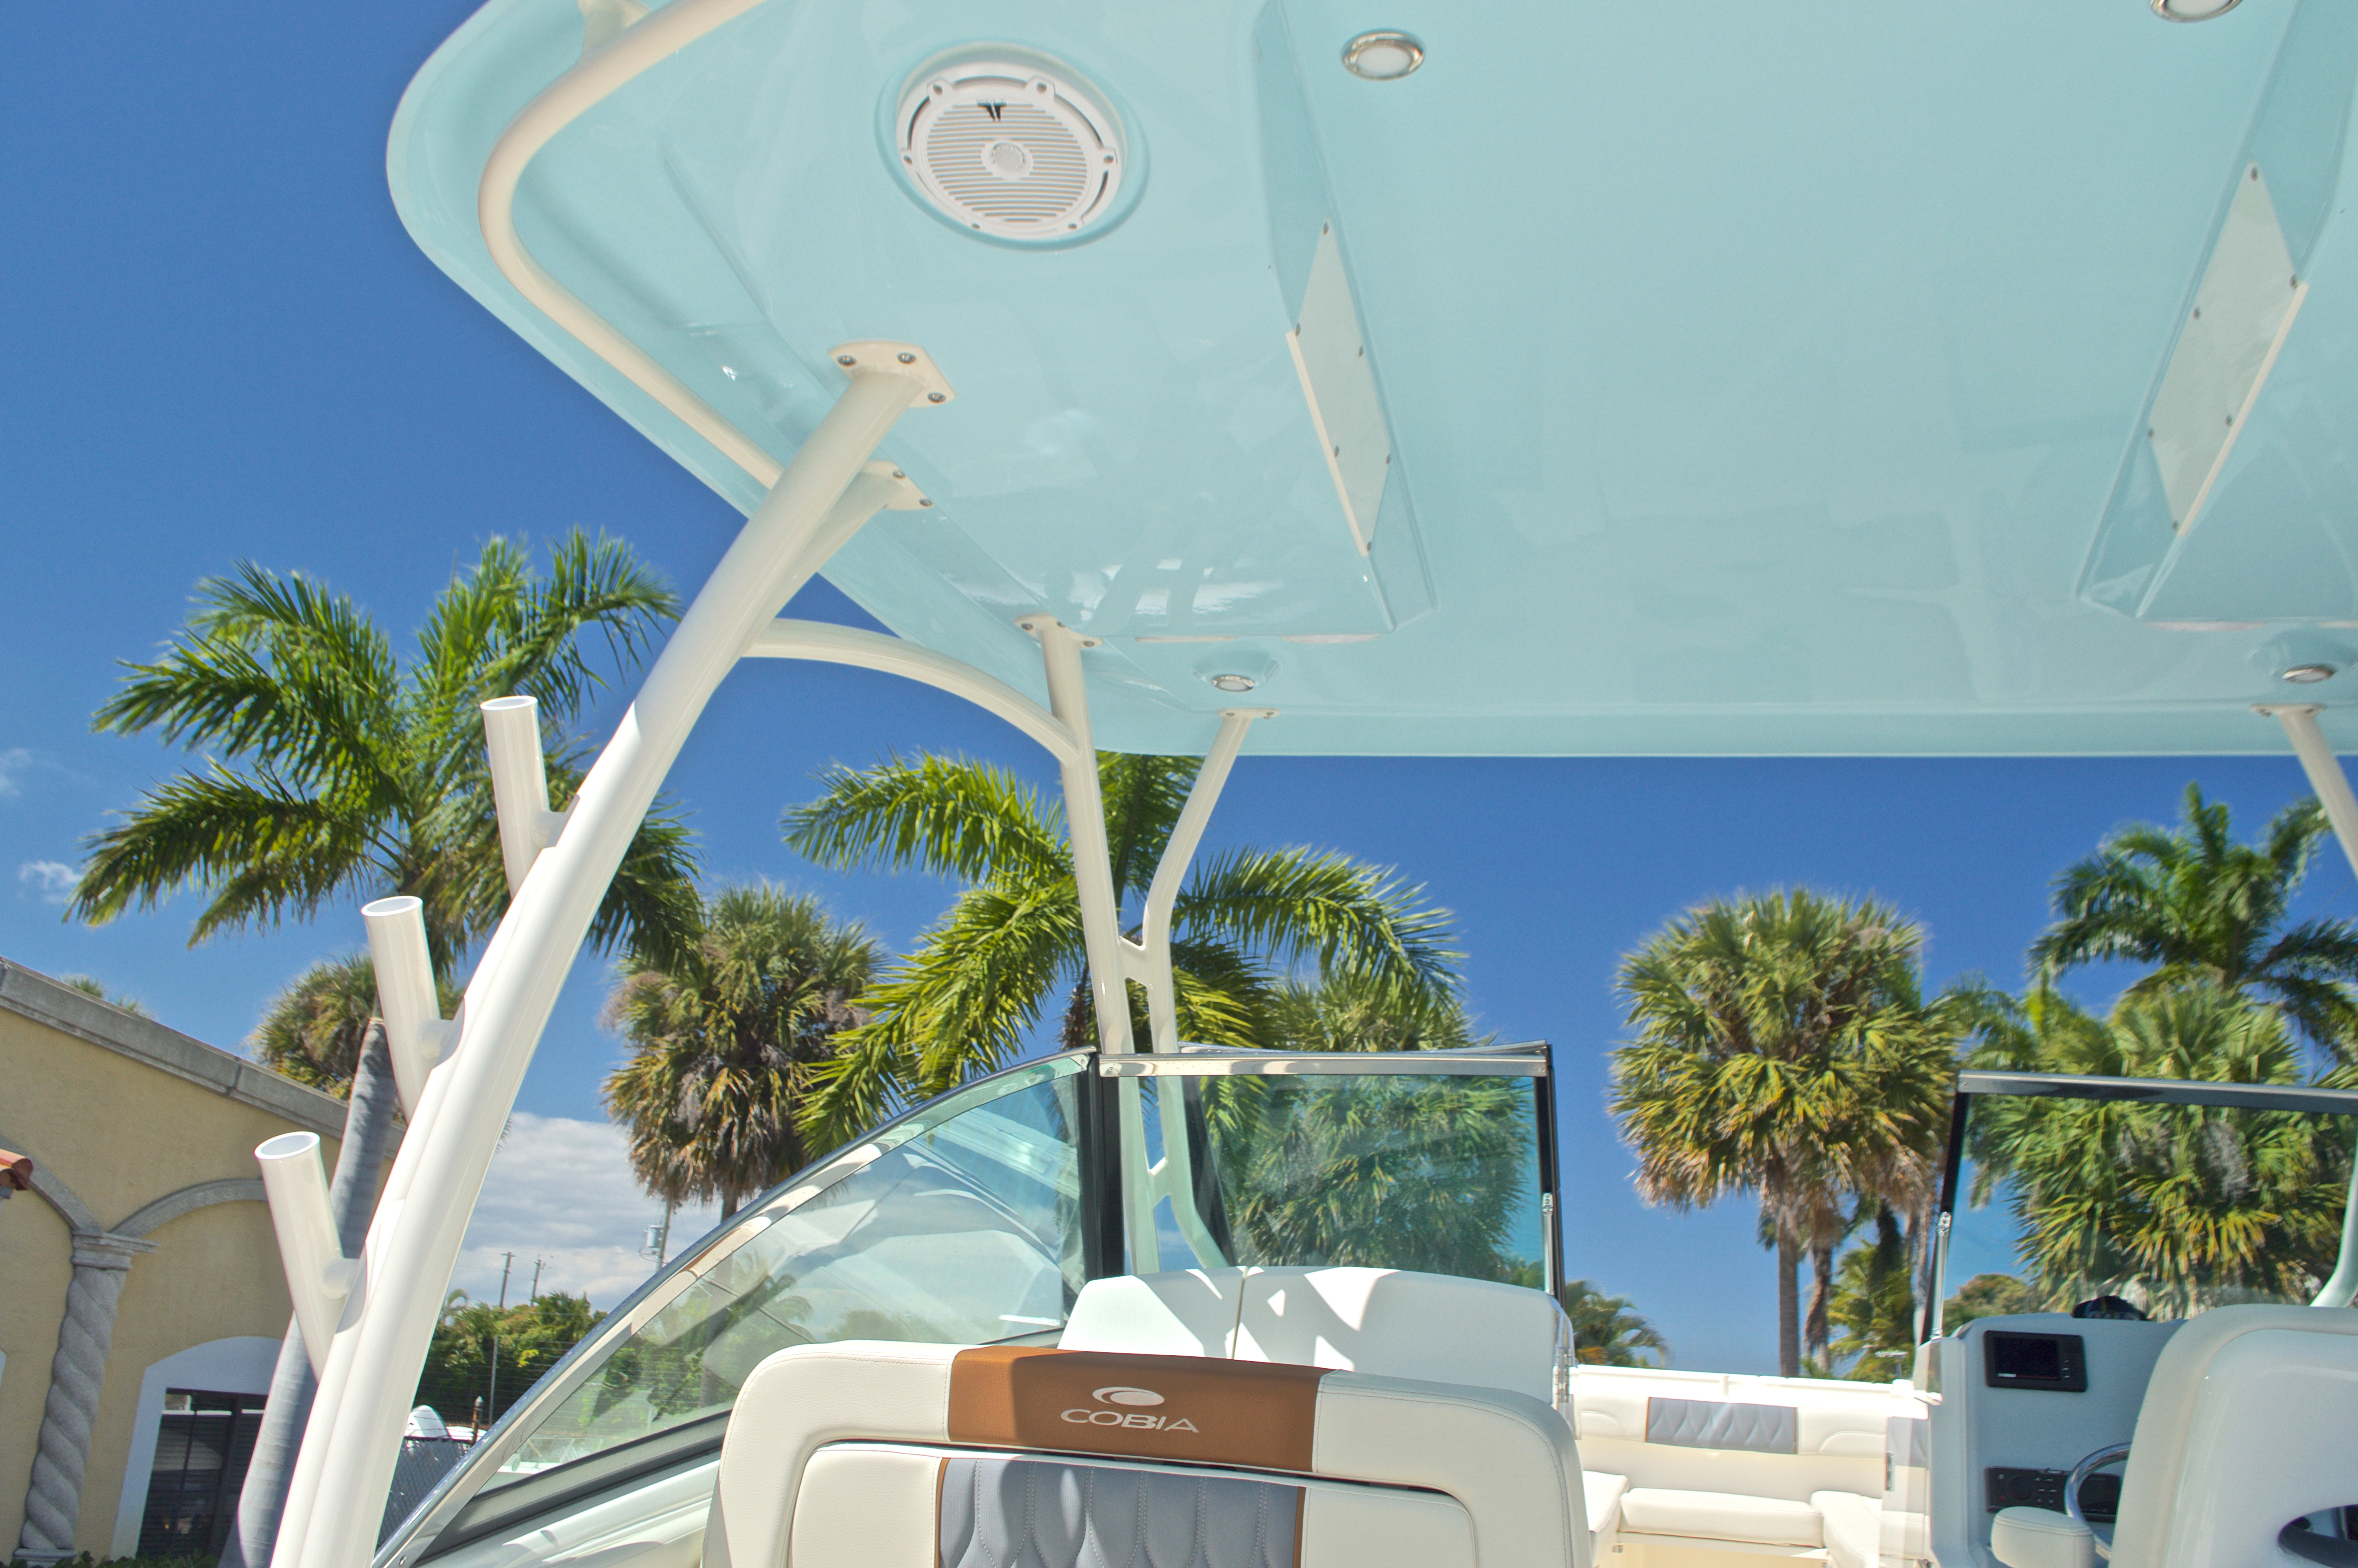 Thumbnail 108 for New 2017 Cobia 280 DC Dual Console boat for sale in West Palm Beach, FL